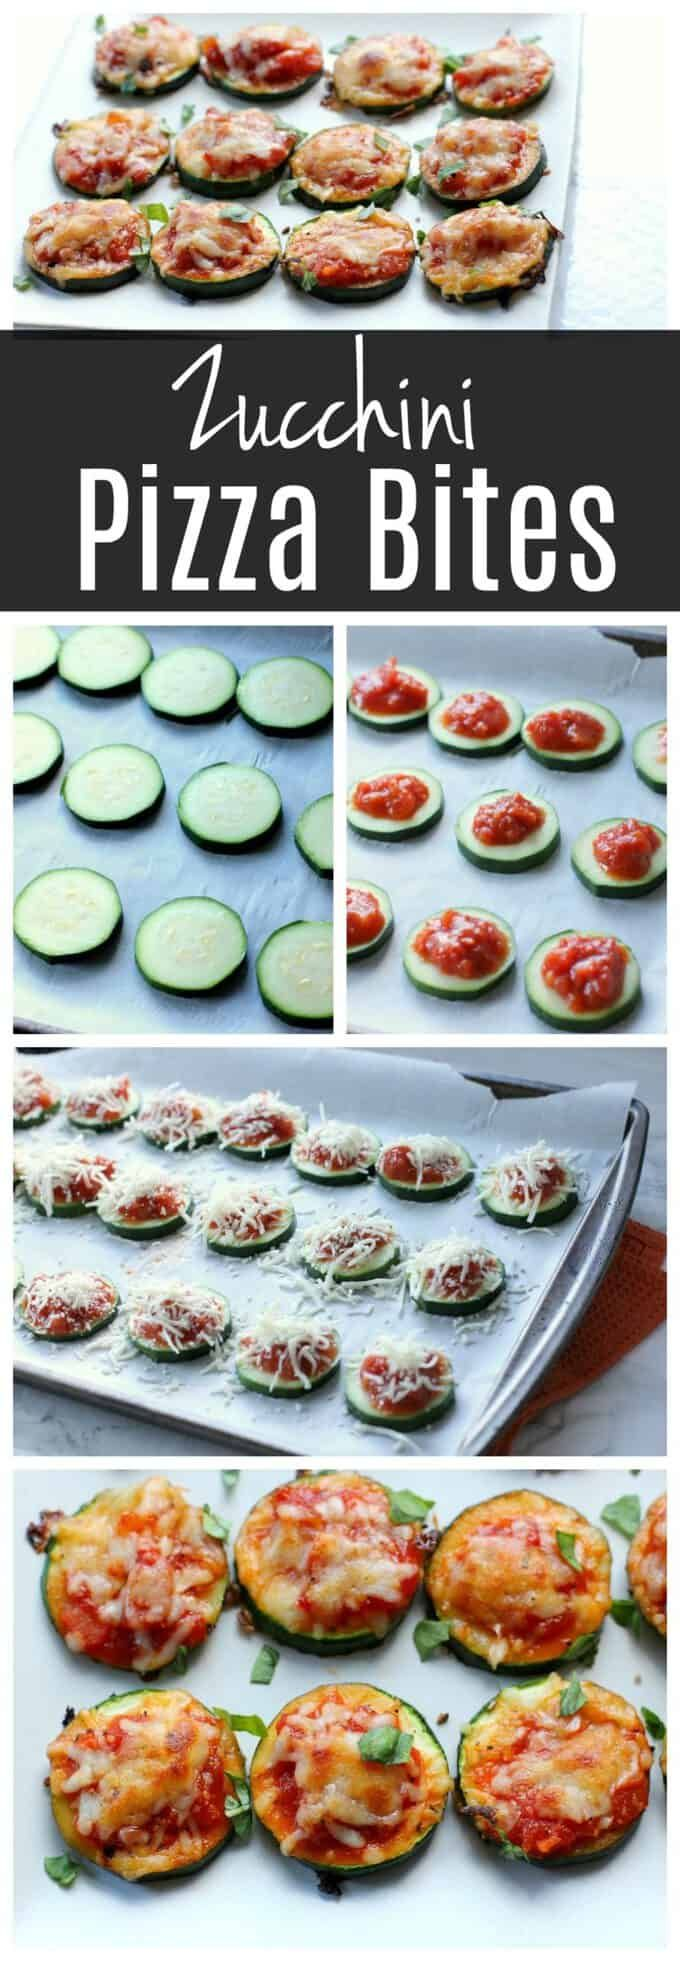 Photo of Zucchini Pizza Bites